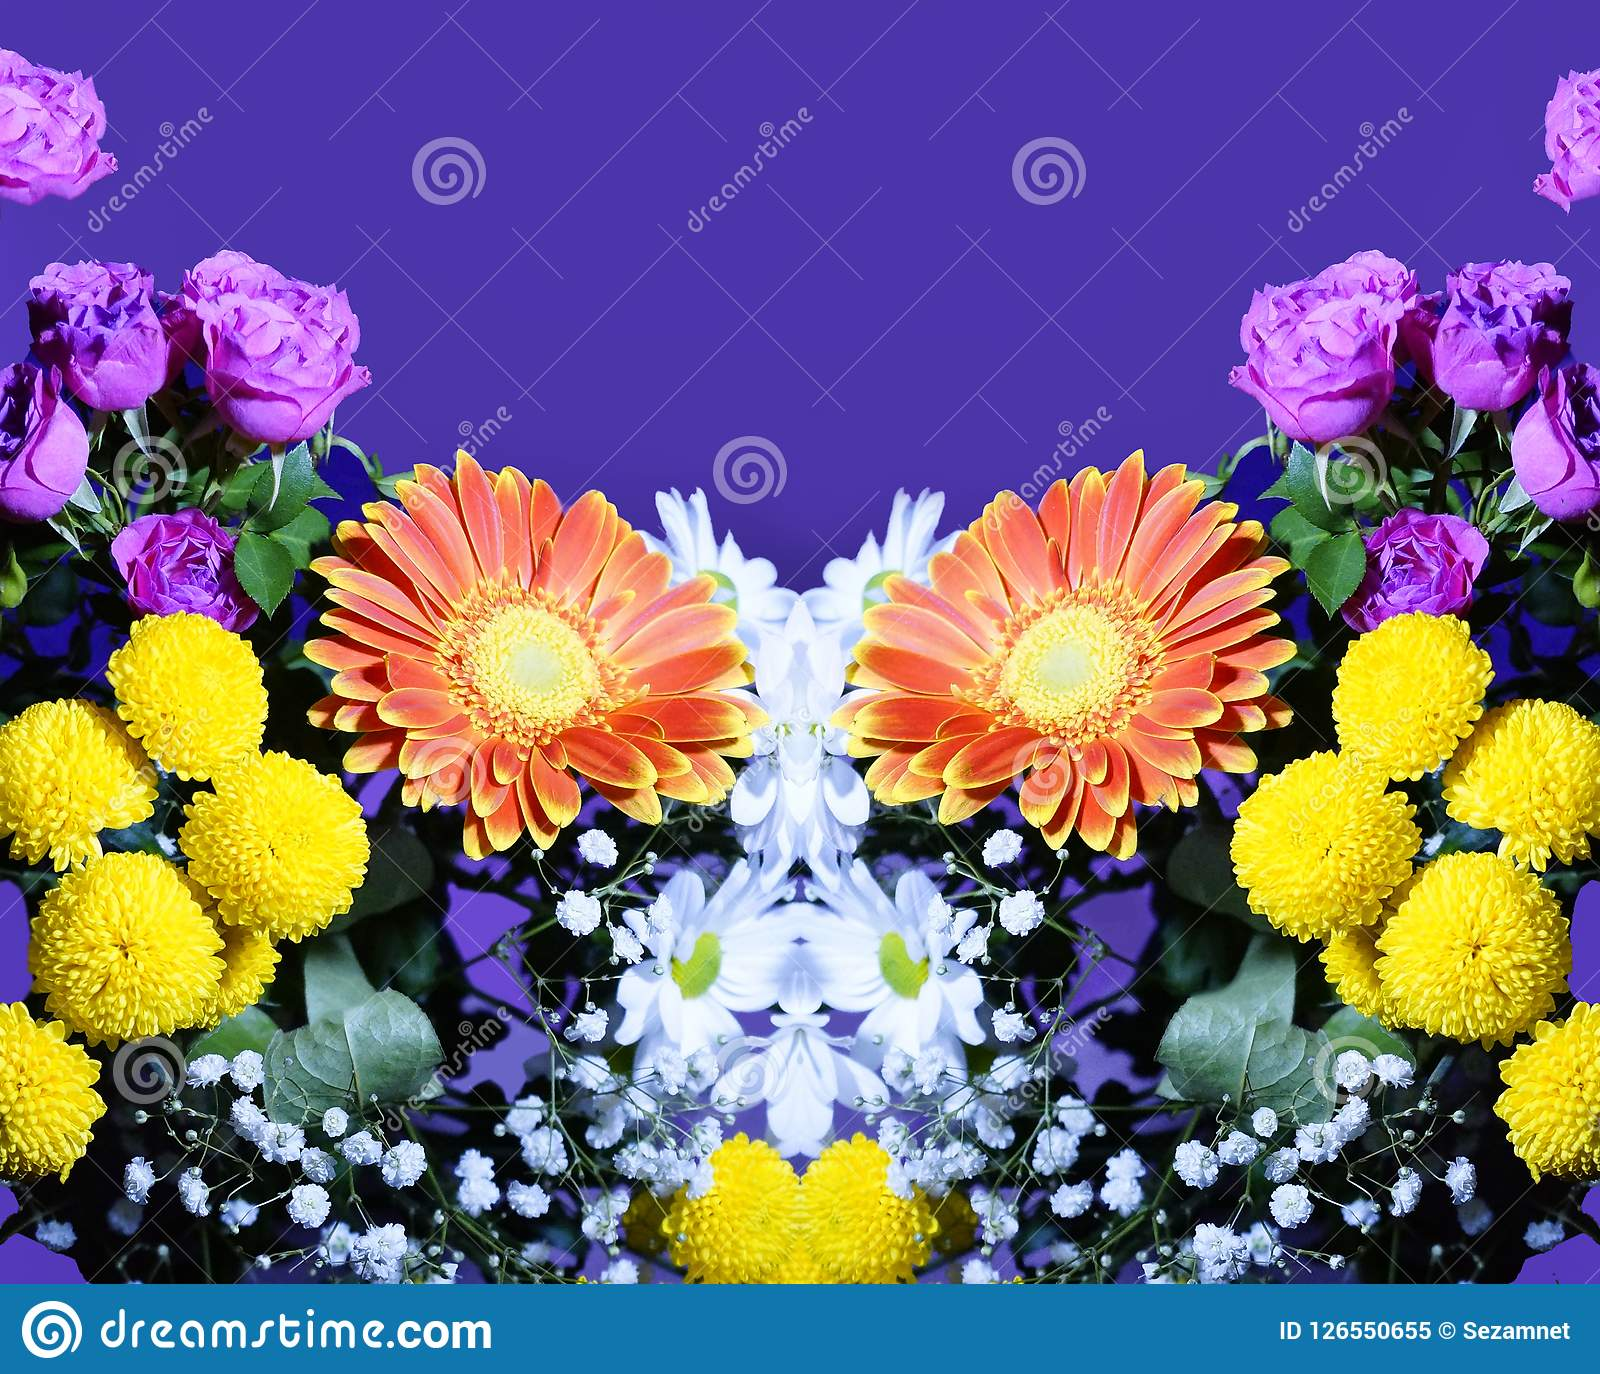 Flower arrangement of orange white pink yellow flowers stock image flower arrangement of orange white pink yellow flowers purple background mightylinksfo